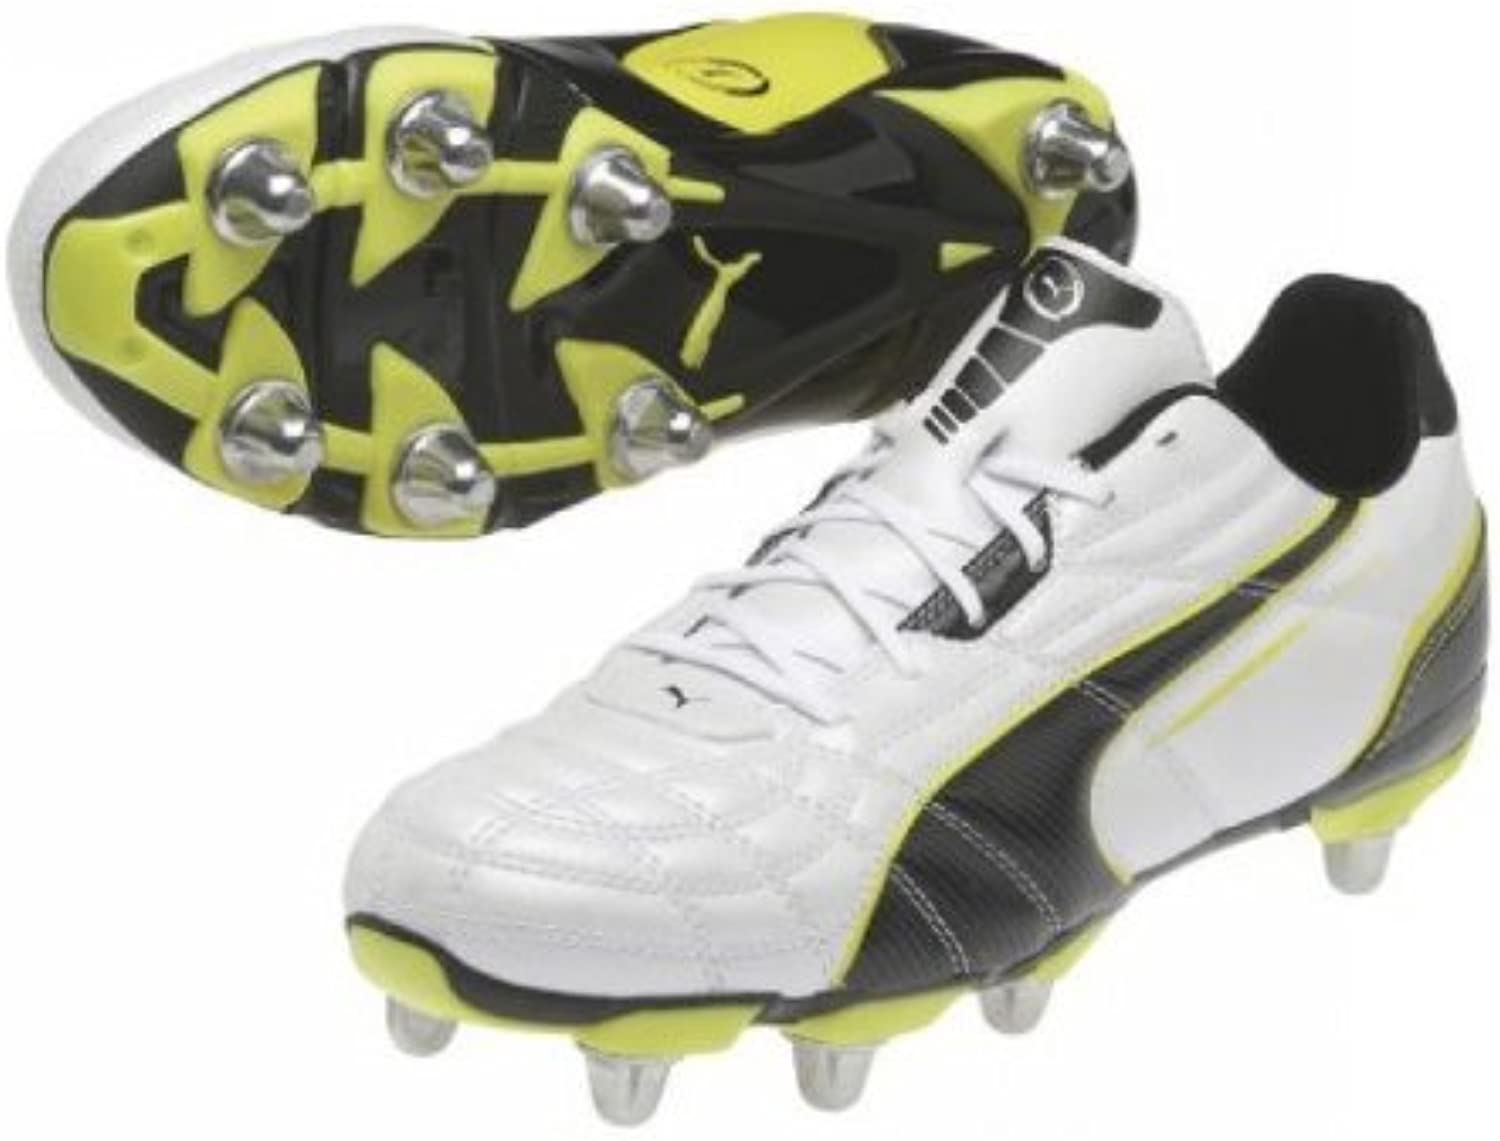 Puma King Universal H8 Low Cut Soft Ground Rugby Boots White Black Blazing Yellow